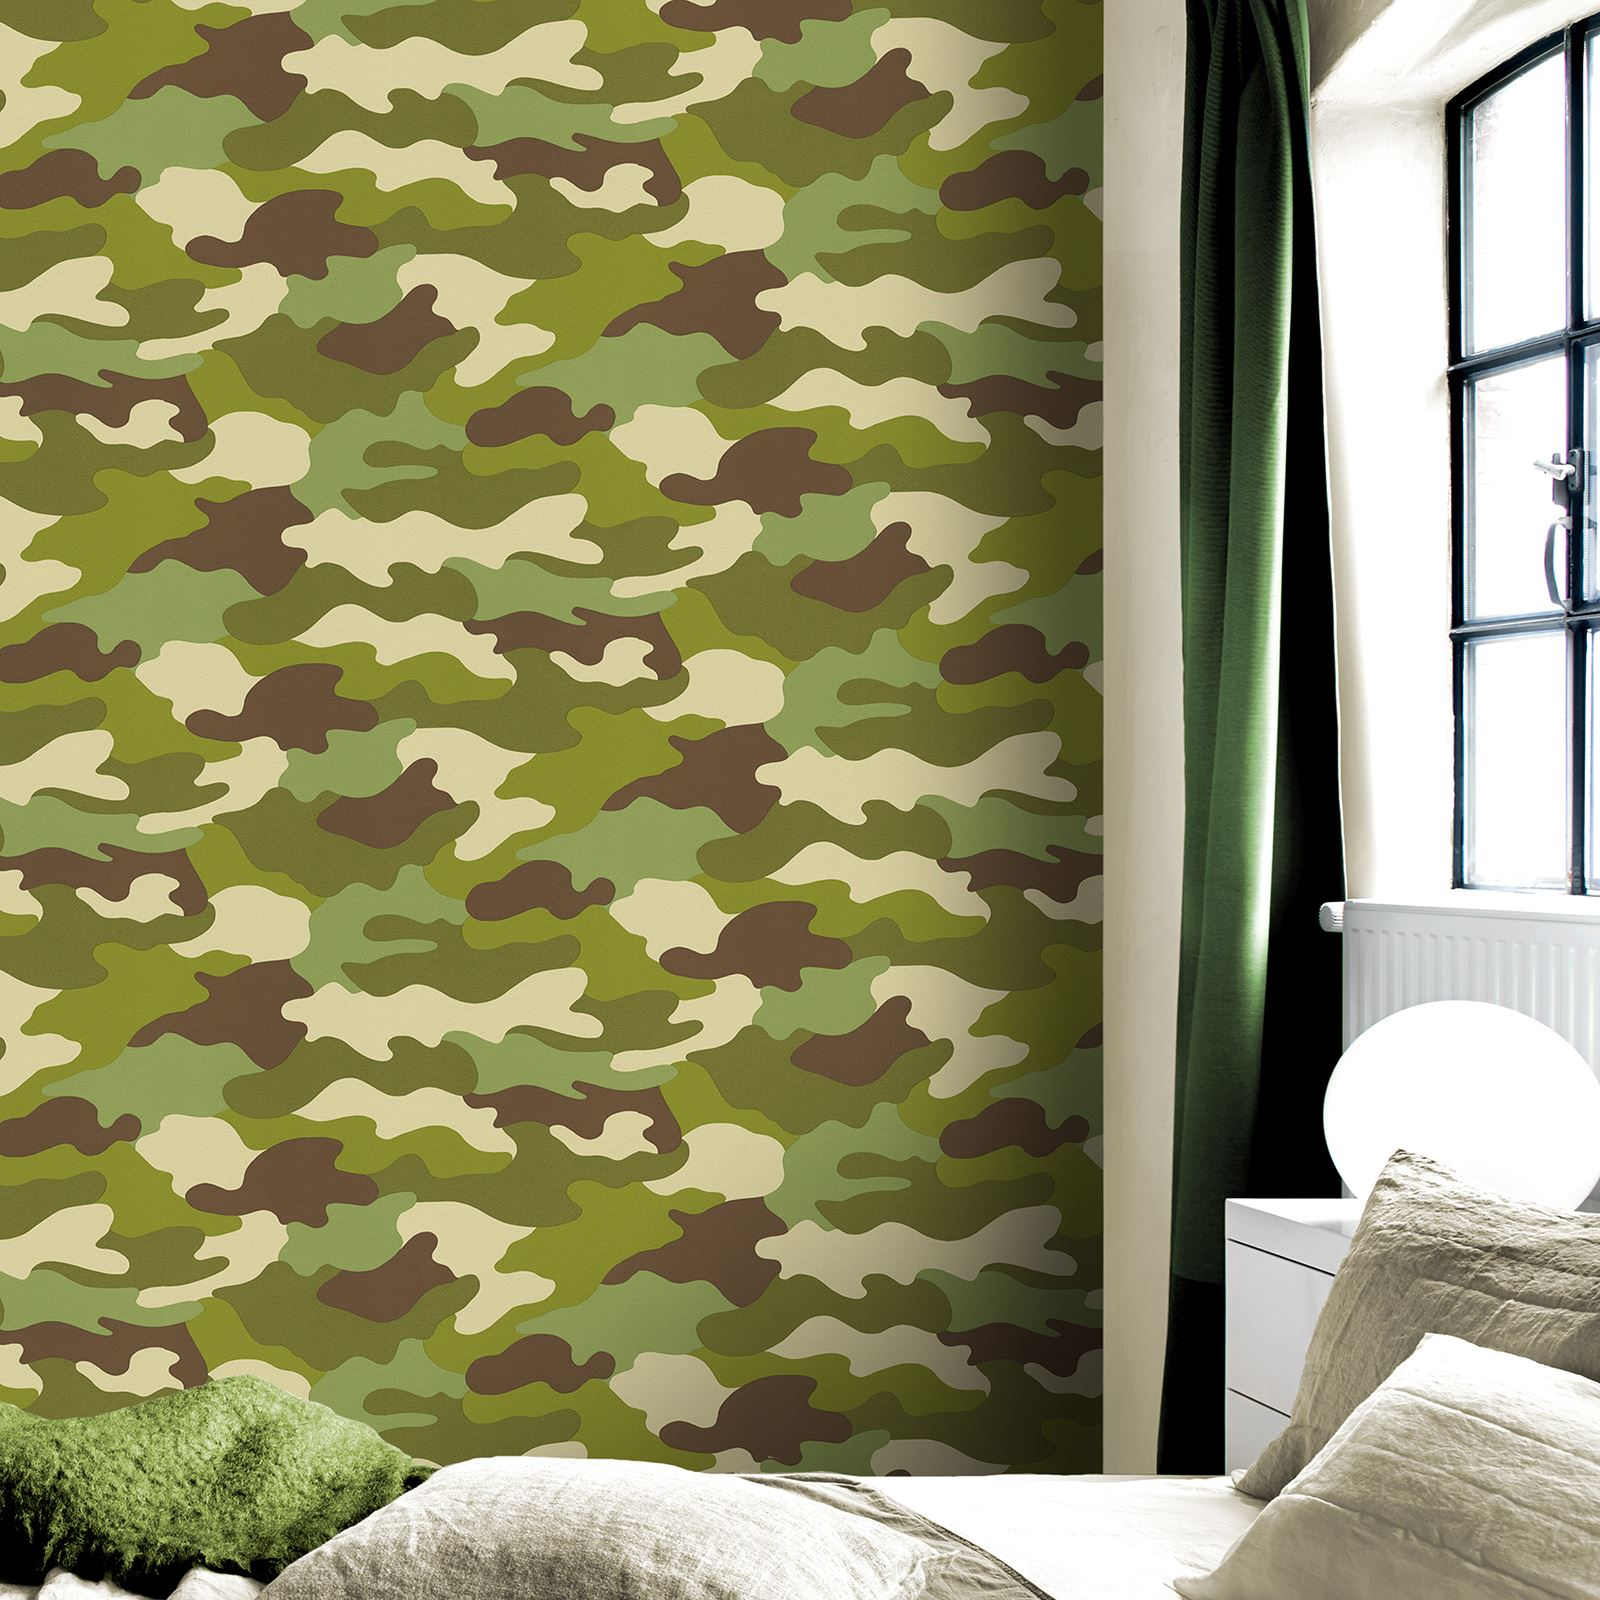 BLACK ARMY SOLDIER BEDROOM CAMOUFLAGE WALLPAPER 10M KHAKI GREEN GREY